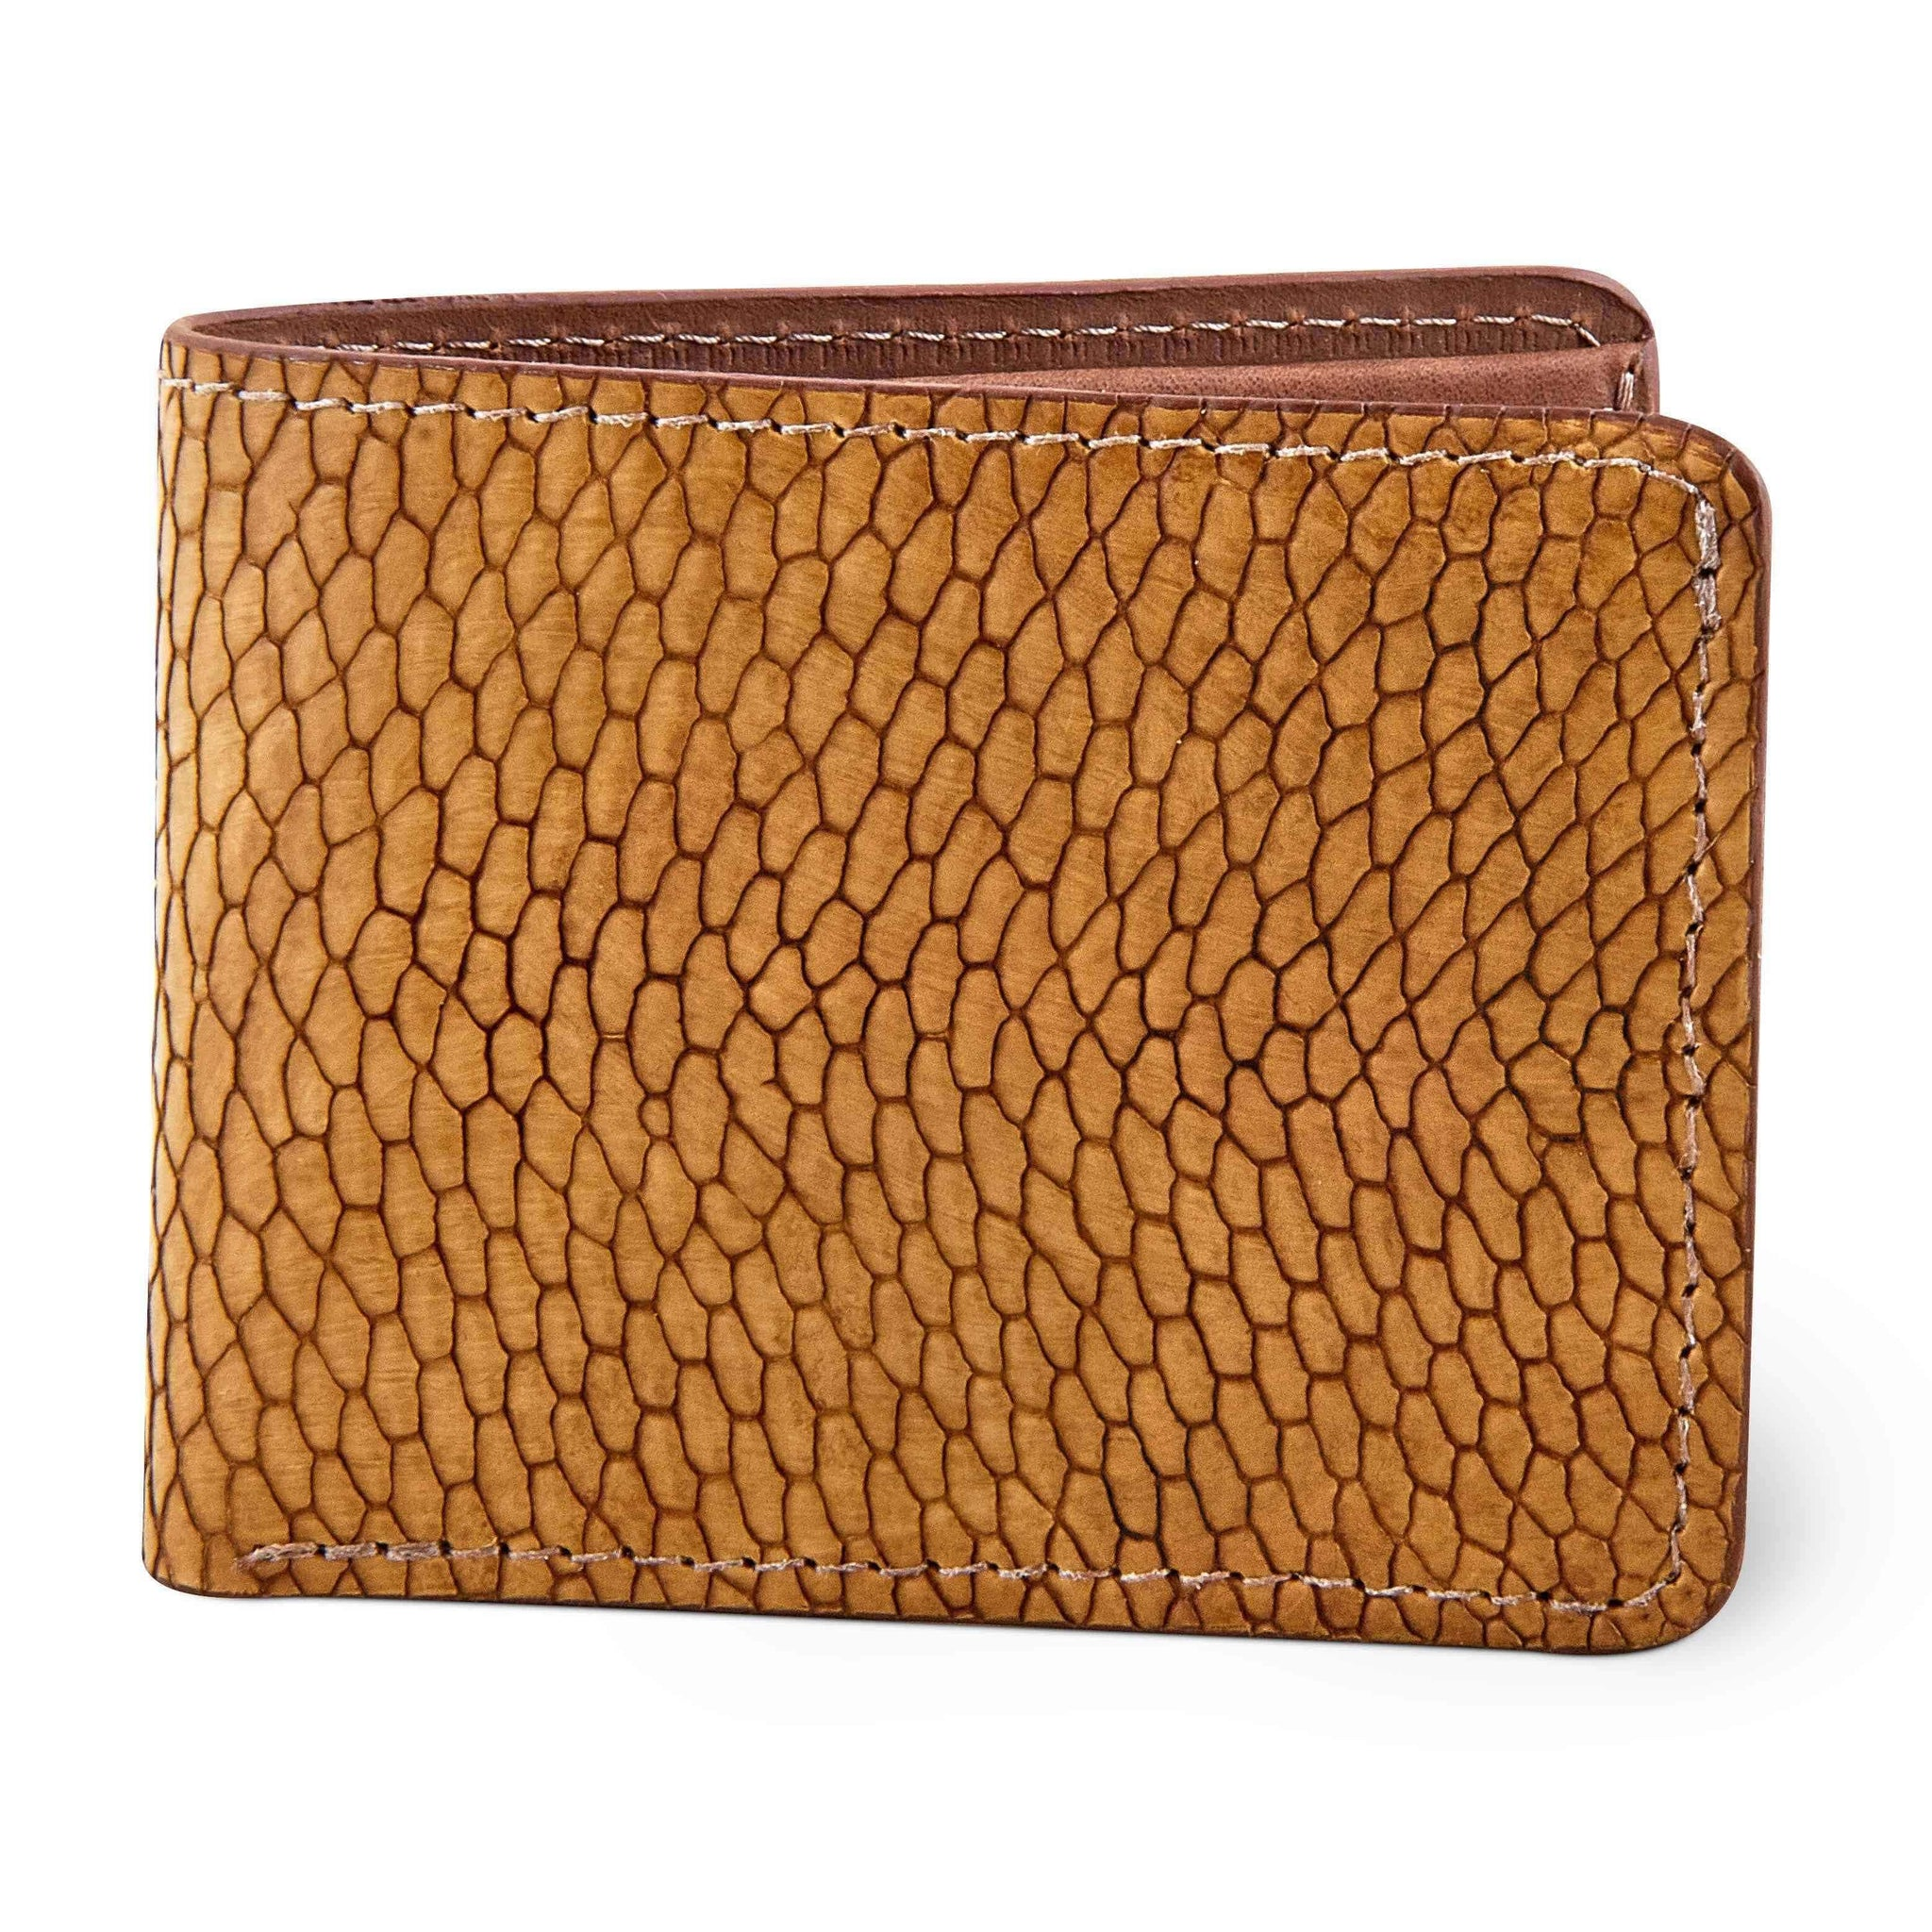 Beaver tail leather wallet